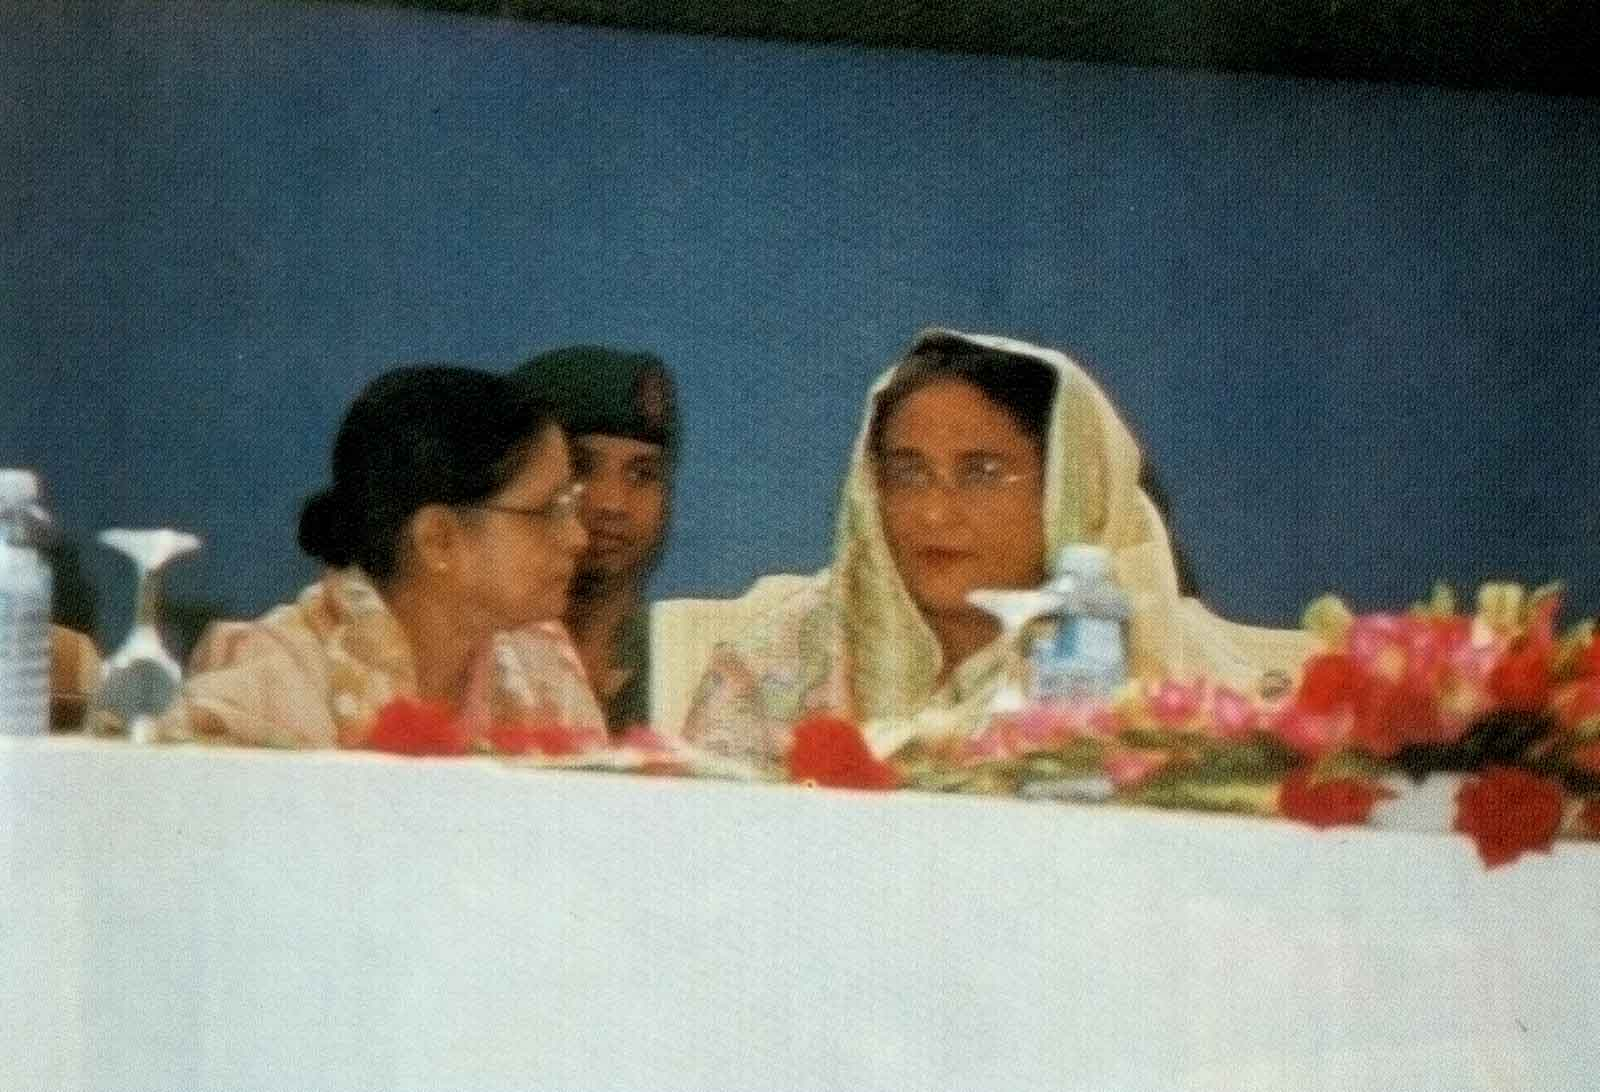 Prime Minister Sheikh Hasina, during a conversation at the 13th ACMR Bangladesh, 1997